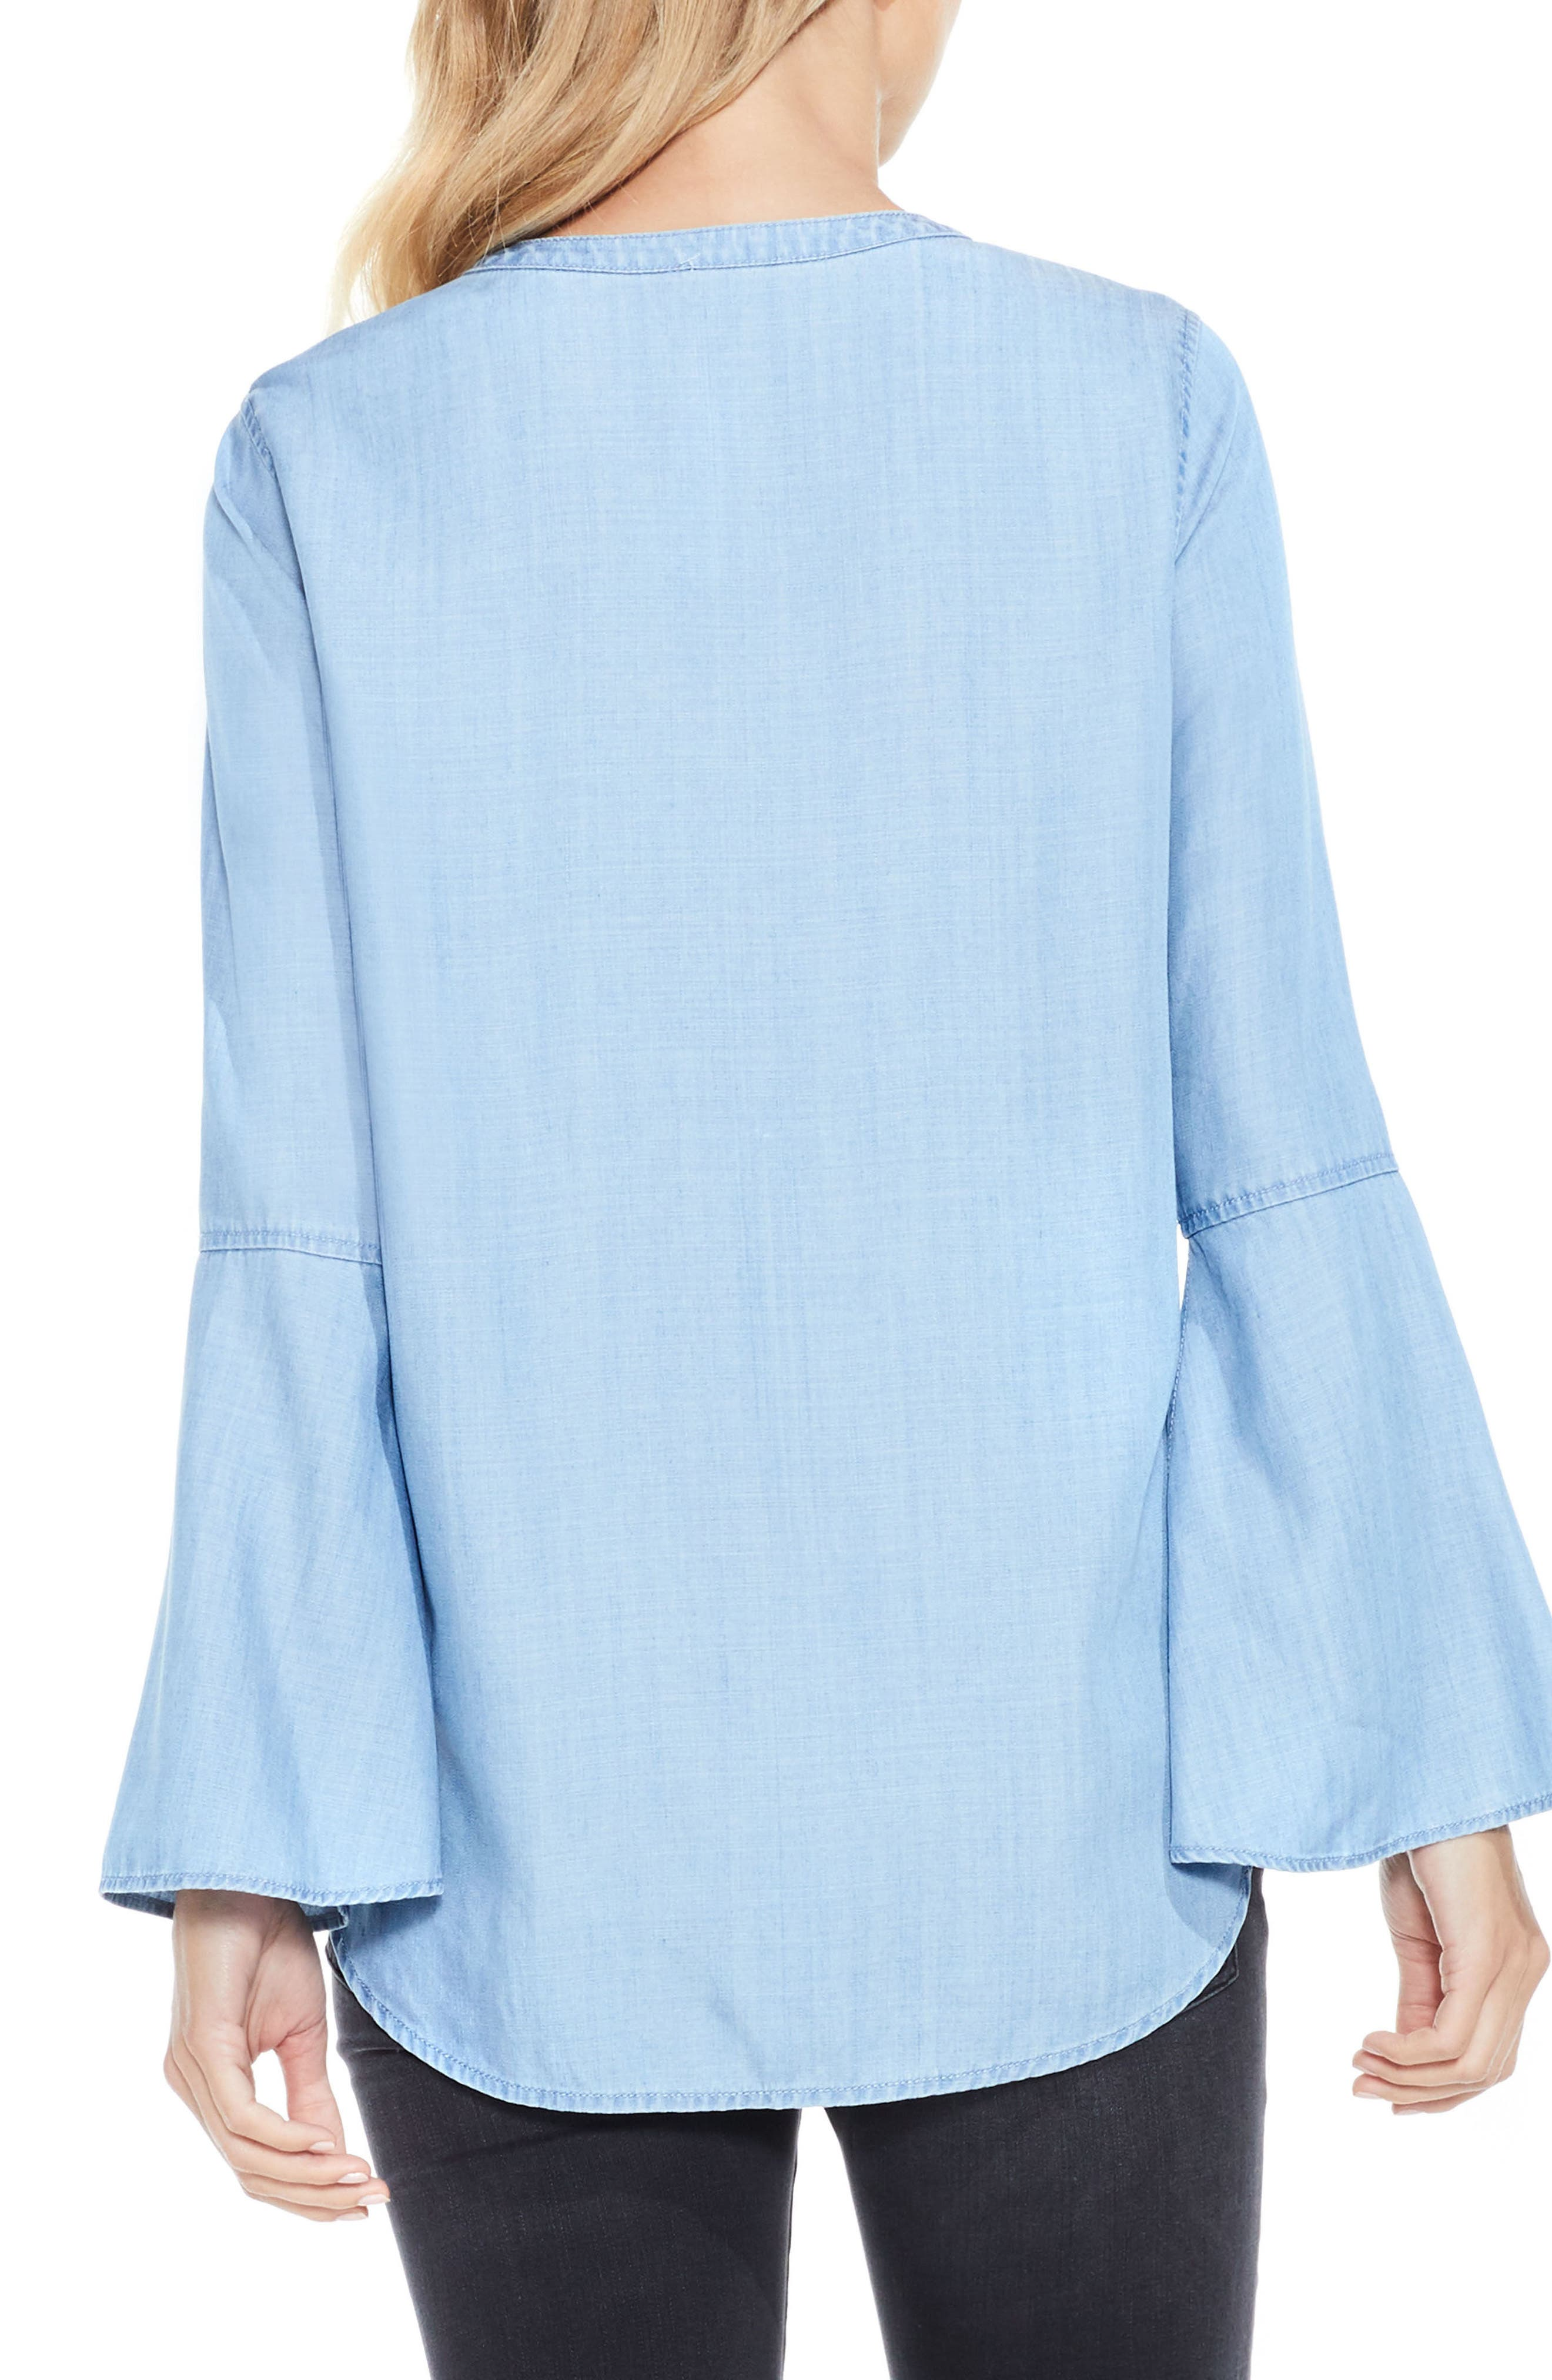 Alternate Image 2  - Two by Vince Camuto Bell Sleeve Chambray Blouse